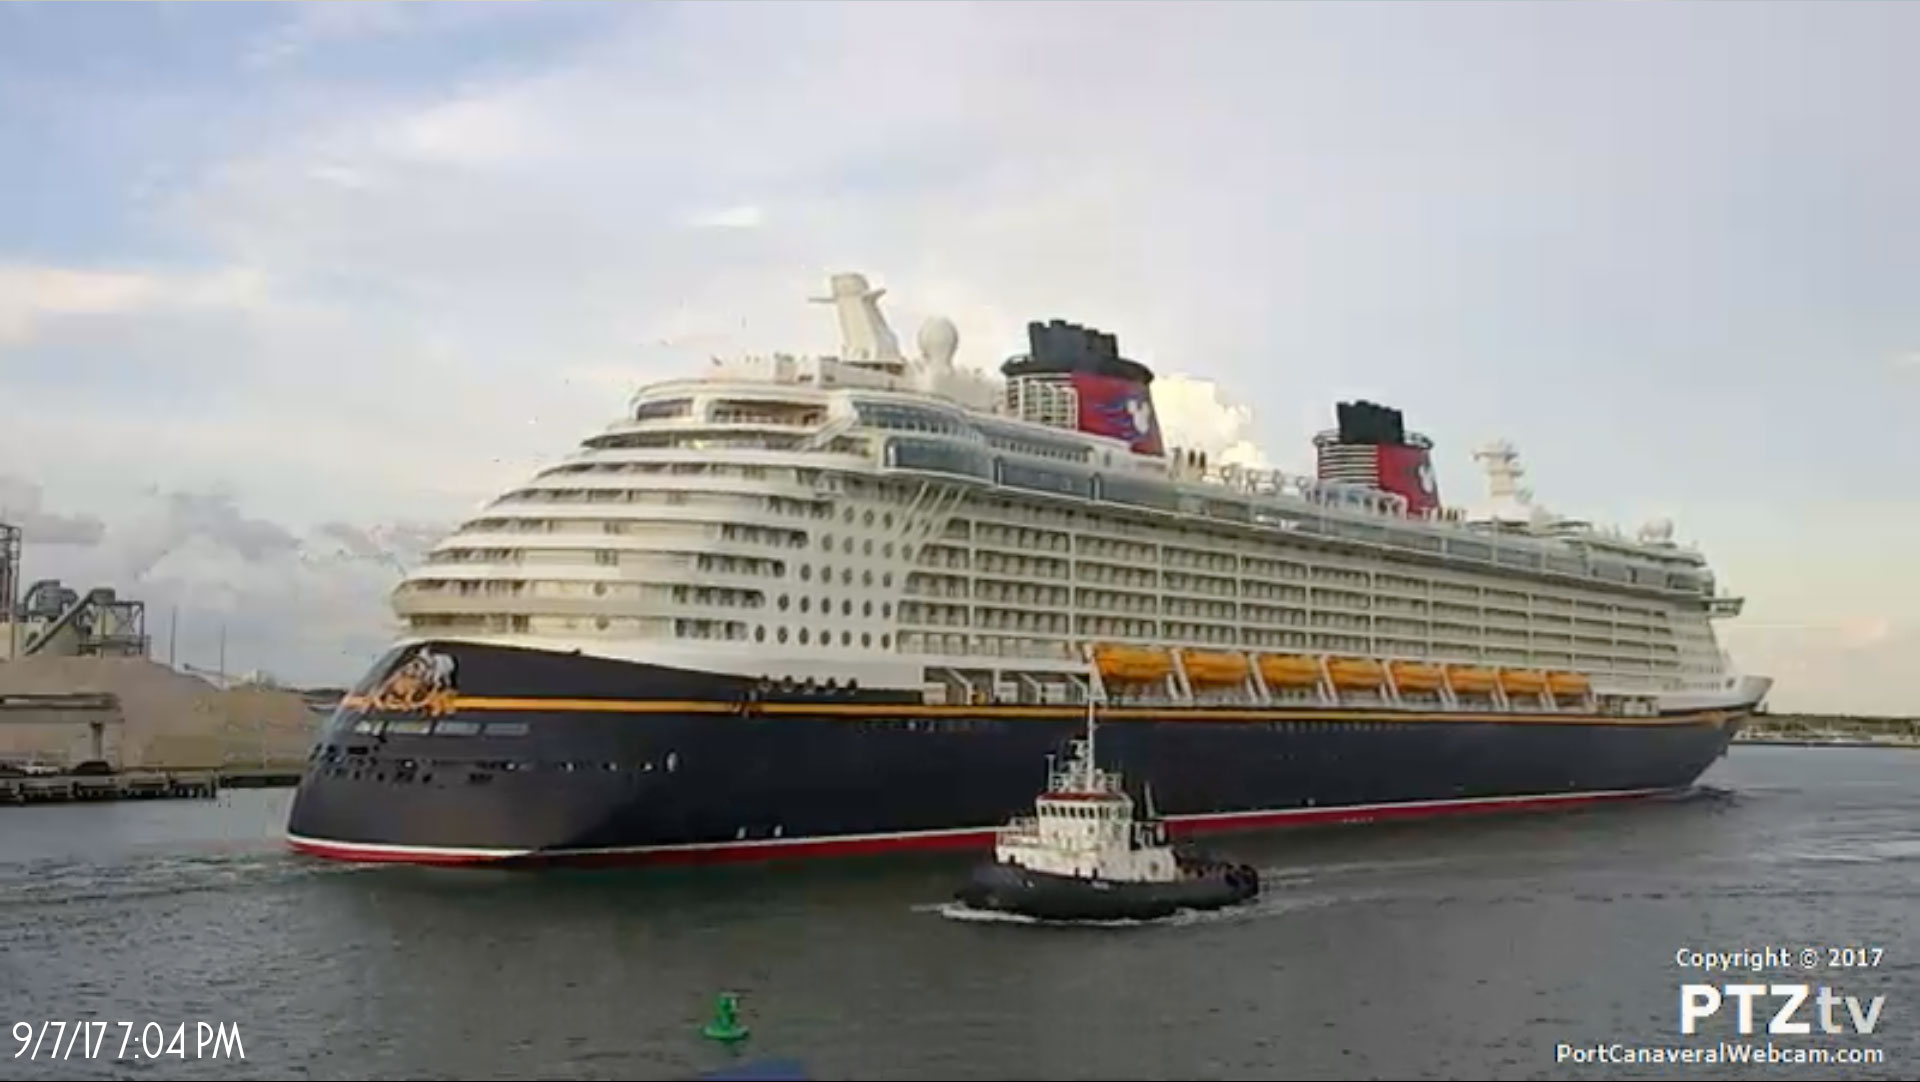 disney cruise line The official website for all things disney: theme parks, resorts, movies, tv programs, characters, games, videos, music, shopping, and more.